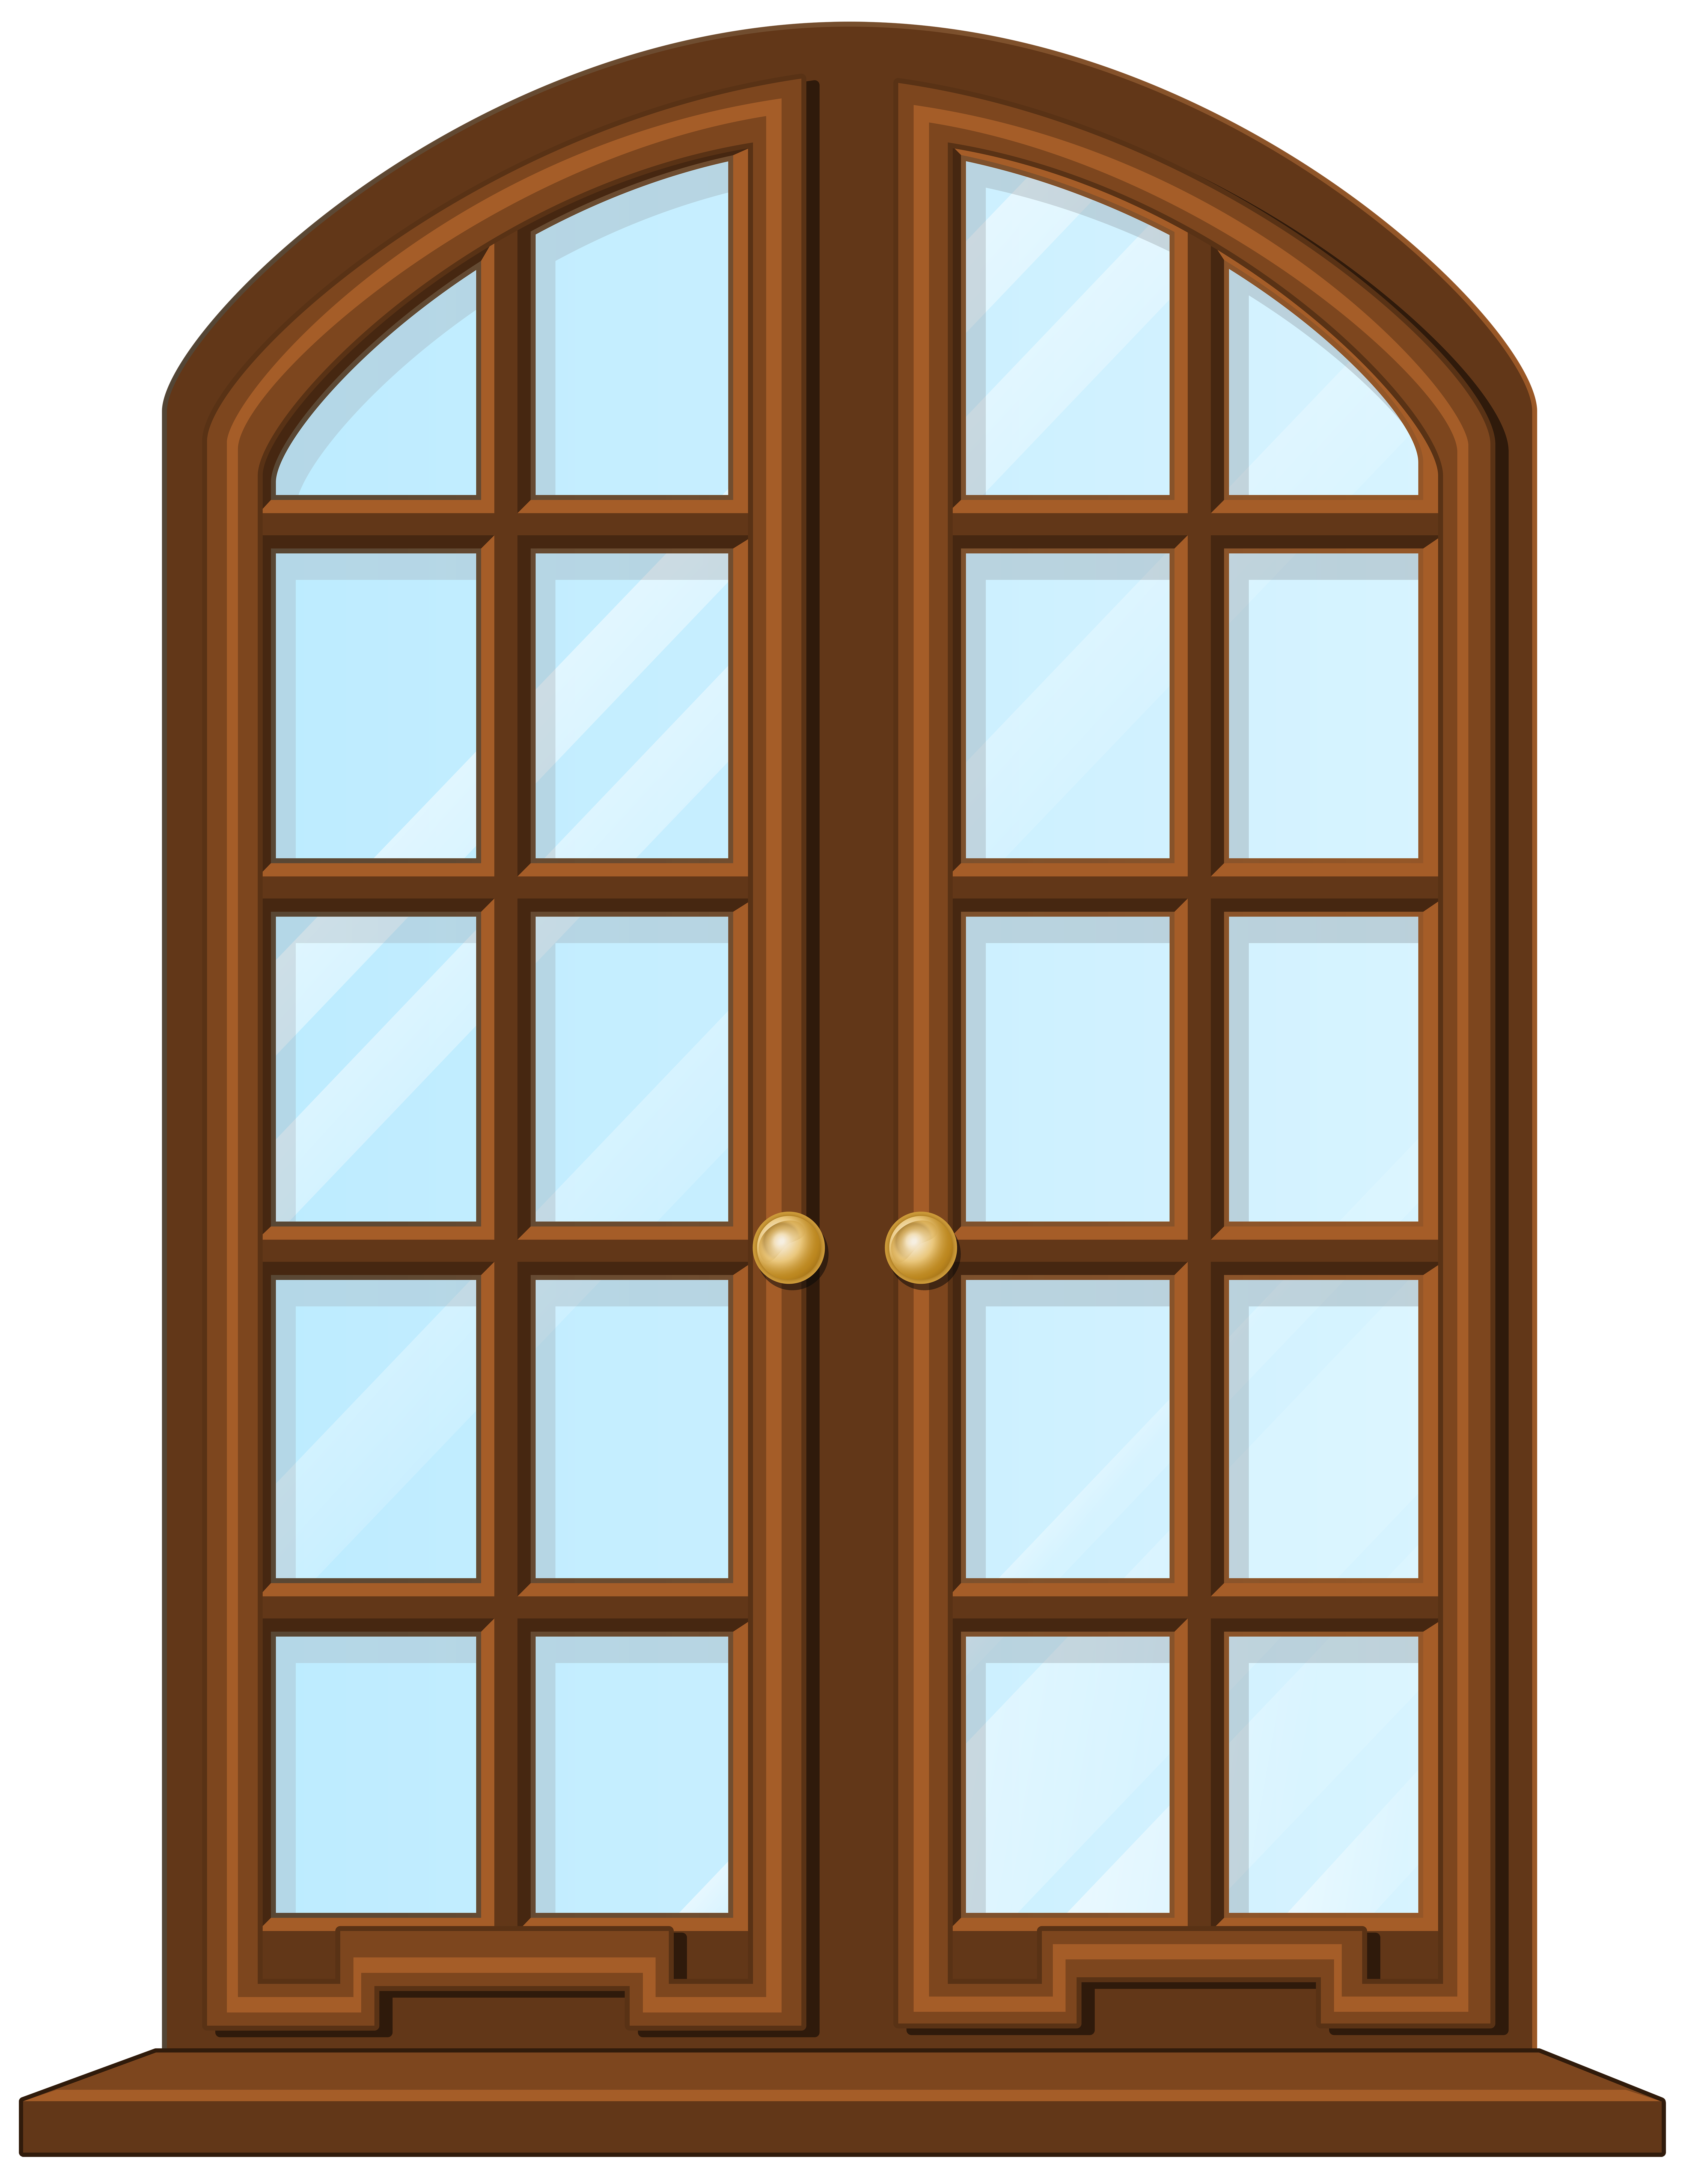 Sun through window clipart picture library download Brown Window PNG Clip Art - Best WEB Clipart picture library download